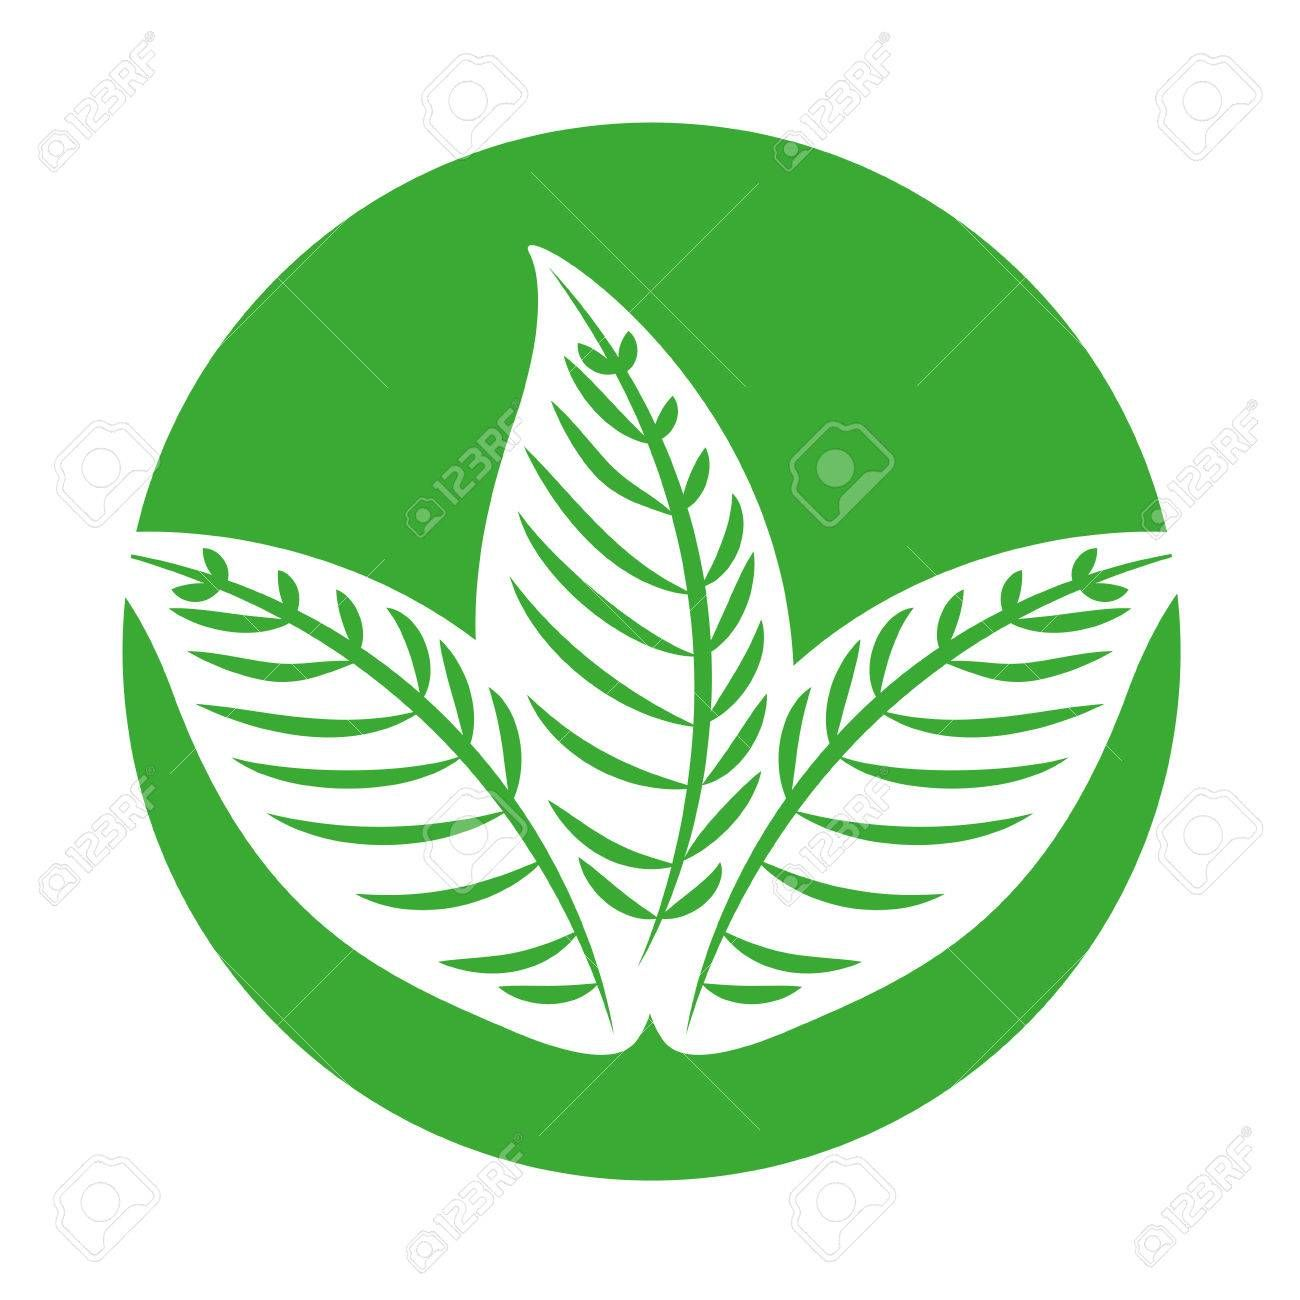 Tropical Leaf Summer Icon Vector Illustration Design Affiliate Summer Leaf Tropical Icon Vector Illustration Design Illustration Design Sketch Book Find the perfect tropical leaf icon stock illustrations from getty images. pinterest